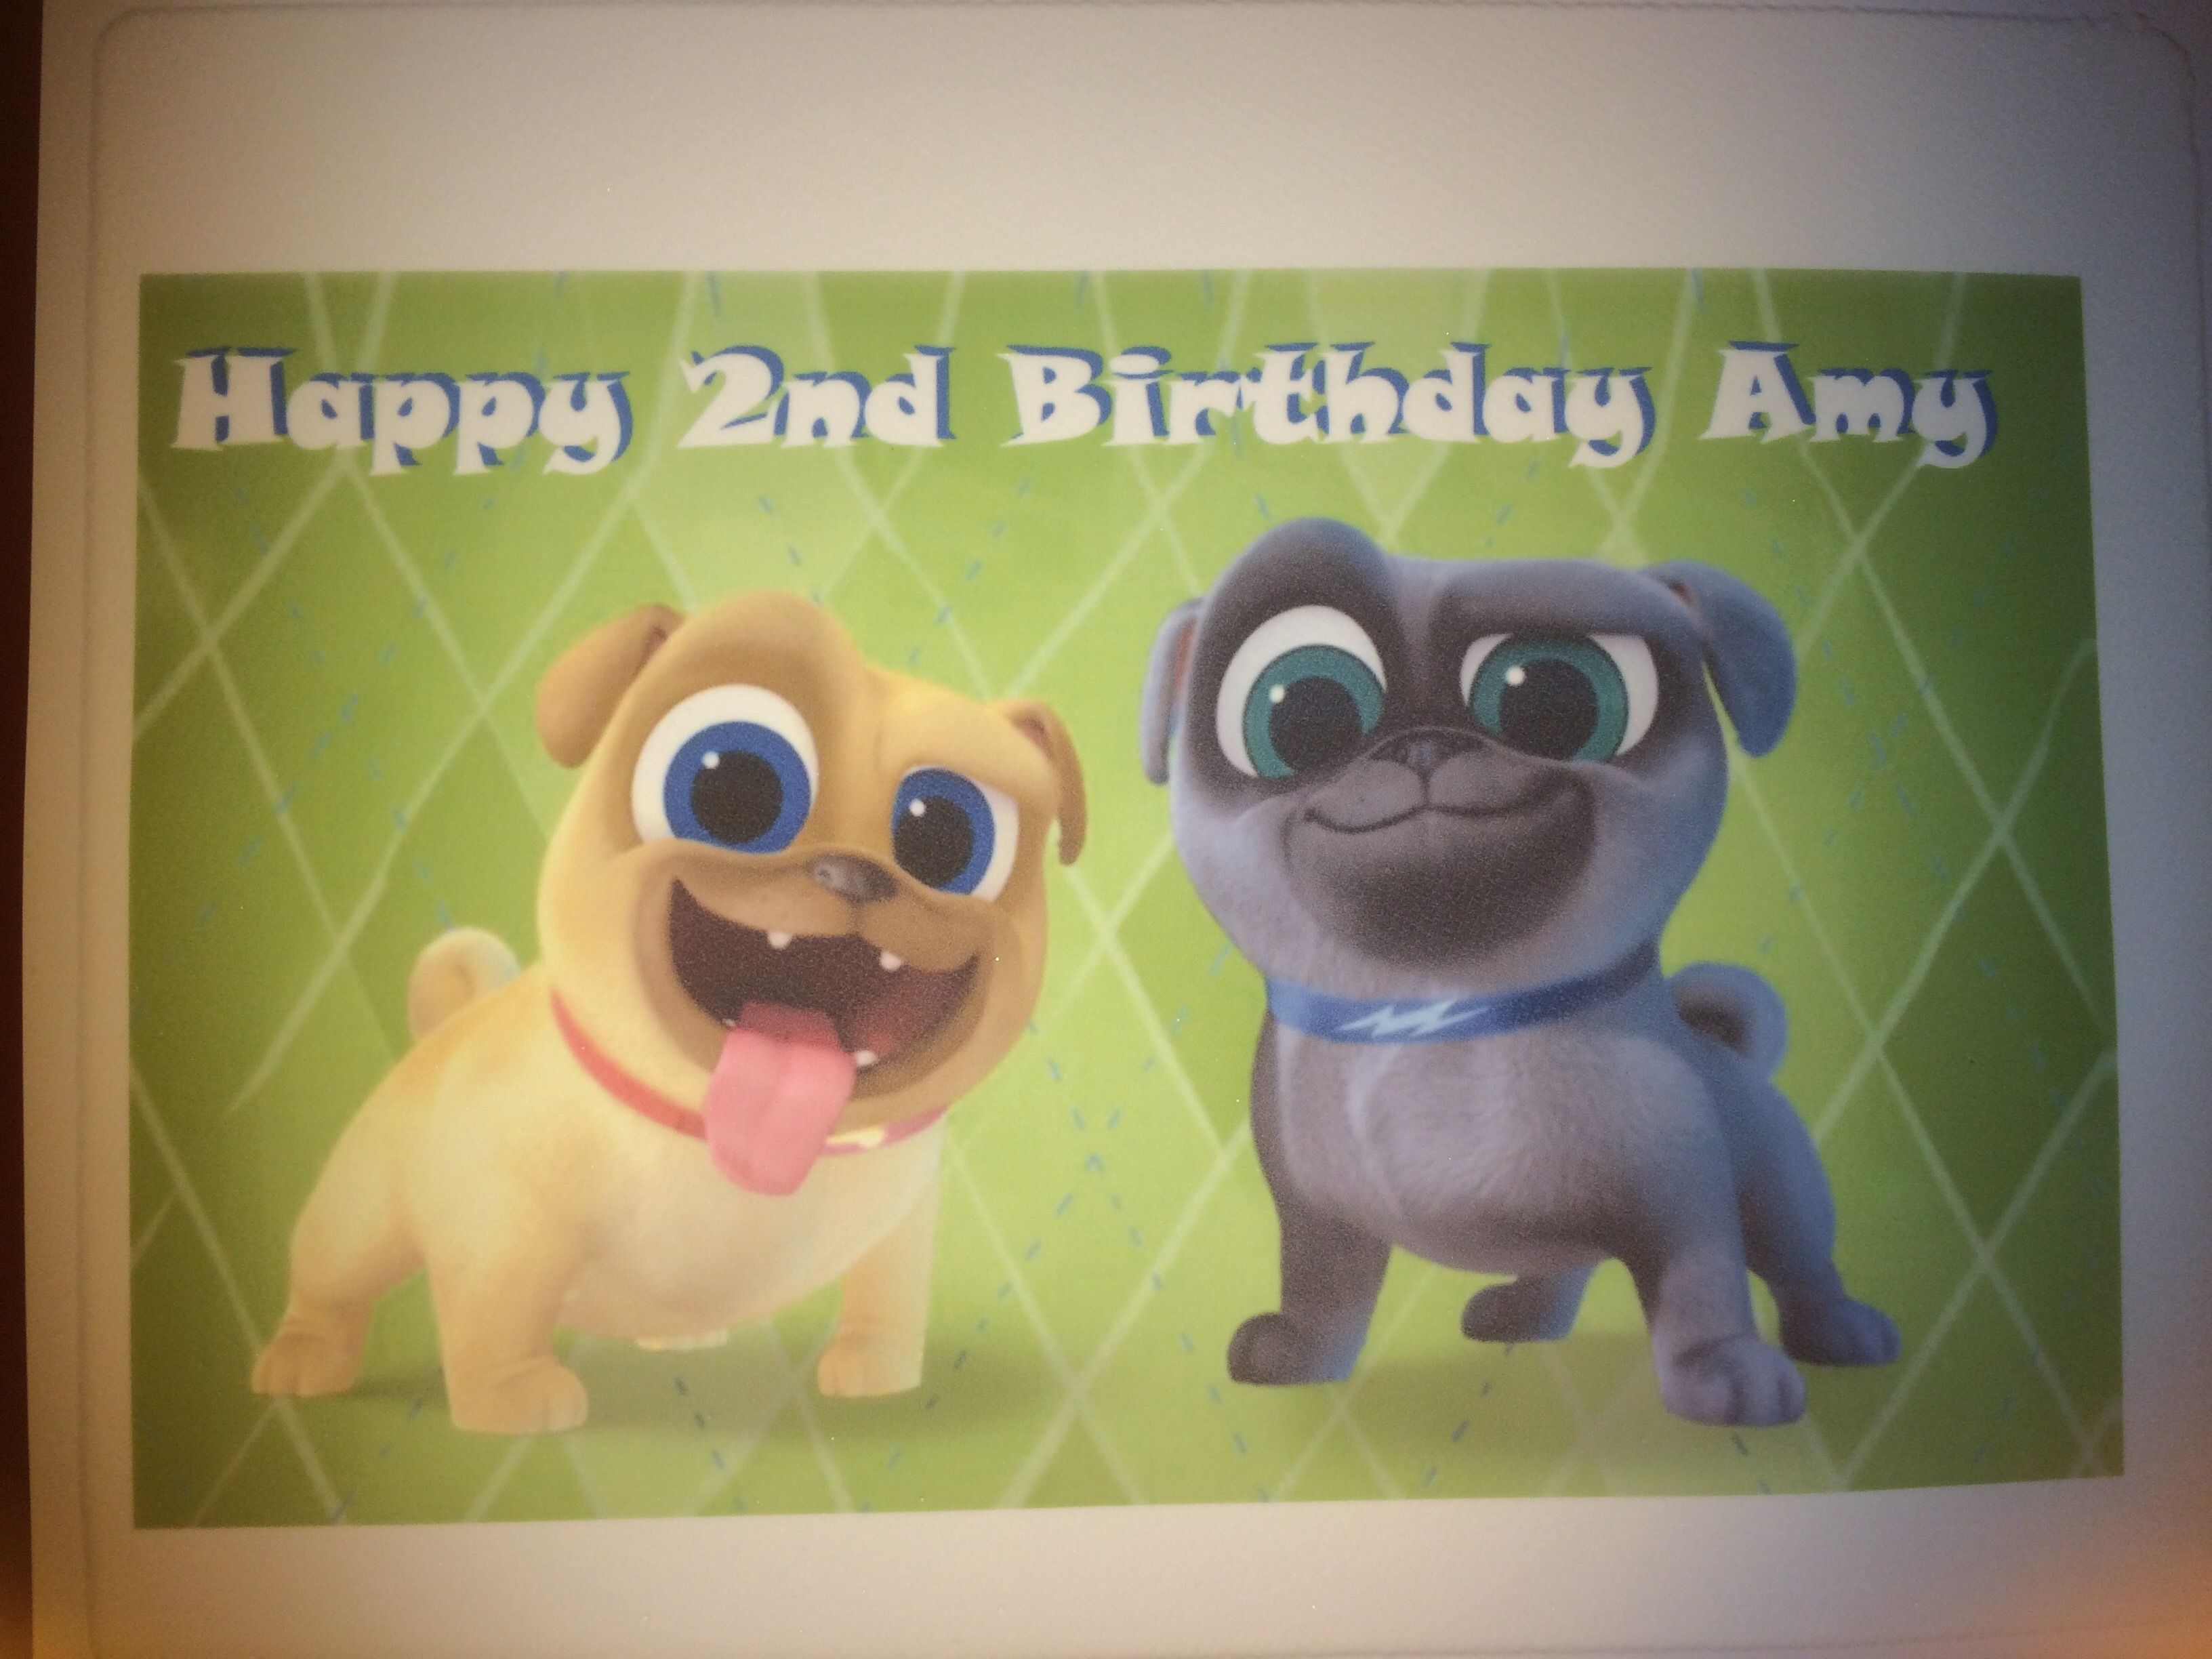 Just created this puppy dog pals edible cake topper for a